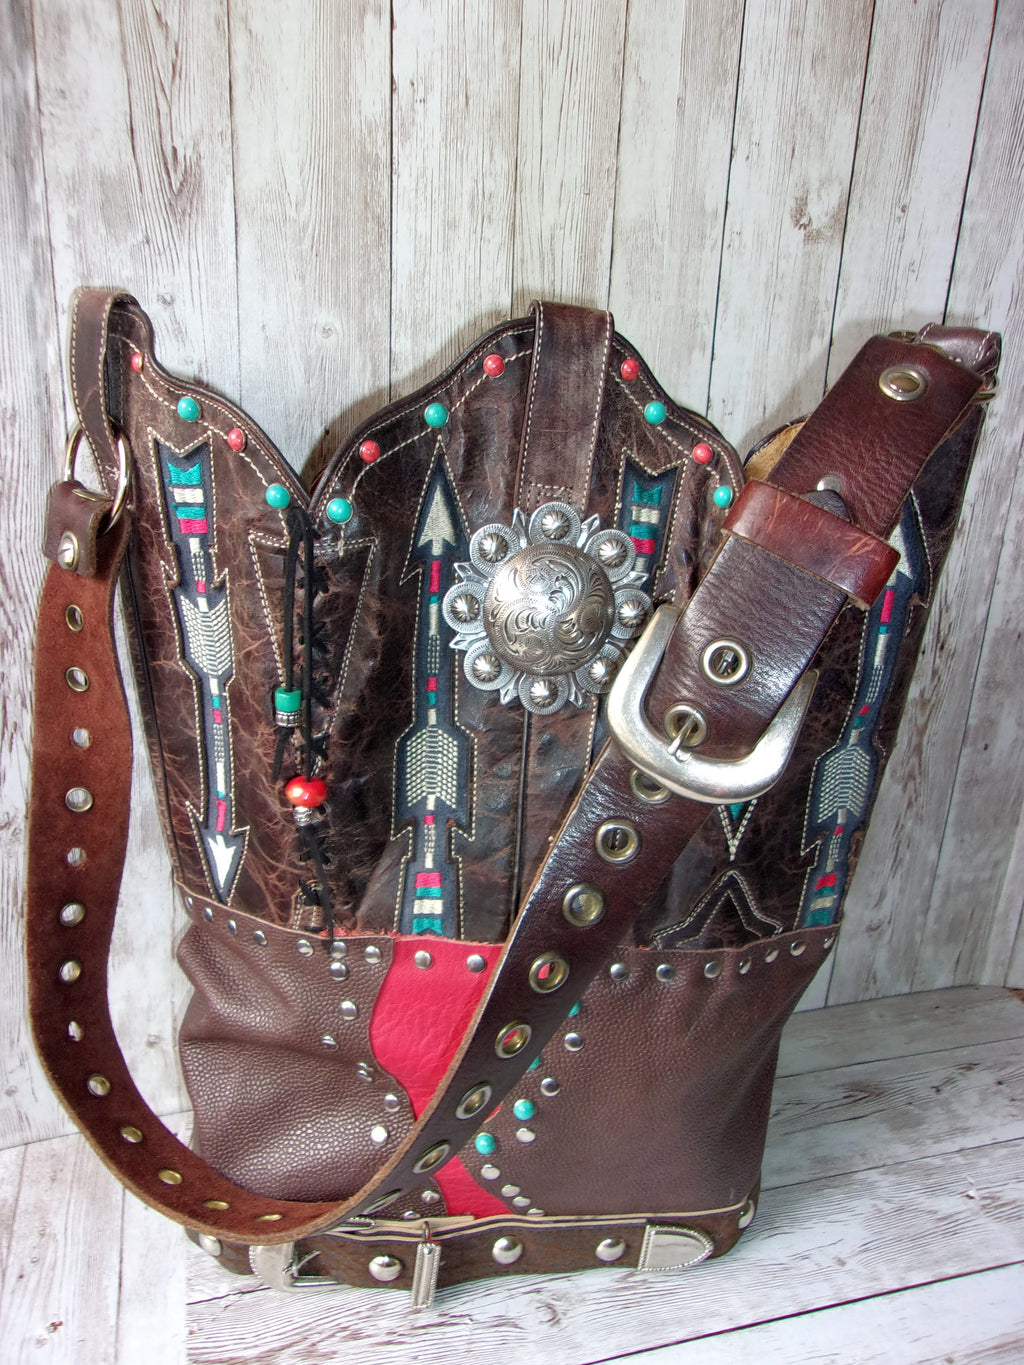 Santa Fe Arrows Leather Shoulder Bag TS252 - Cowboy Boot Purses by Chris Thompson for Distinctive Western Fashion